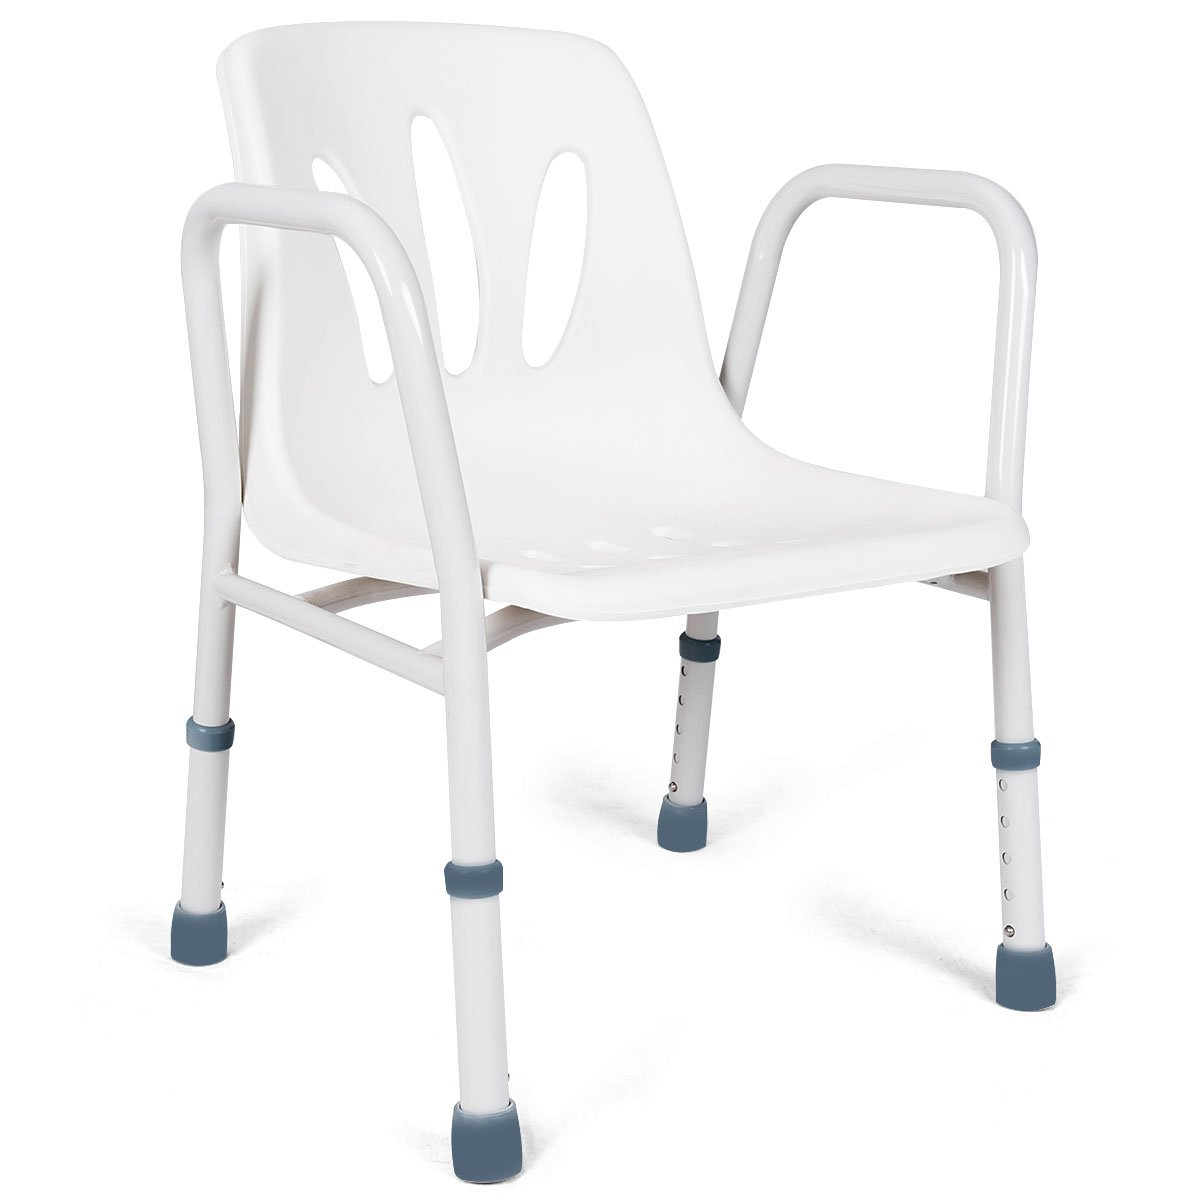 Giantex Shower Chair Adjustable Seat Bench with Back and Arms Lift Seat Height 22 to 26 inch for Disabled Senior Portable Medical Non-Slip Bathtub Bath Chair